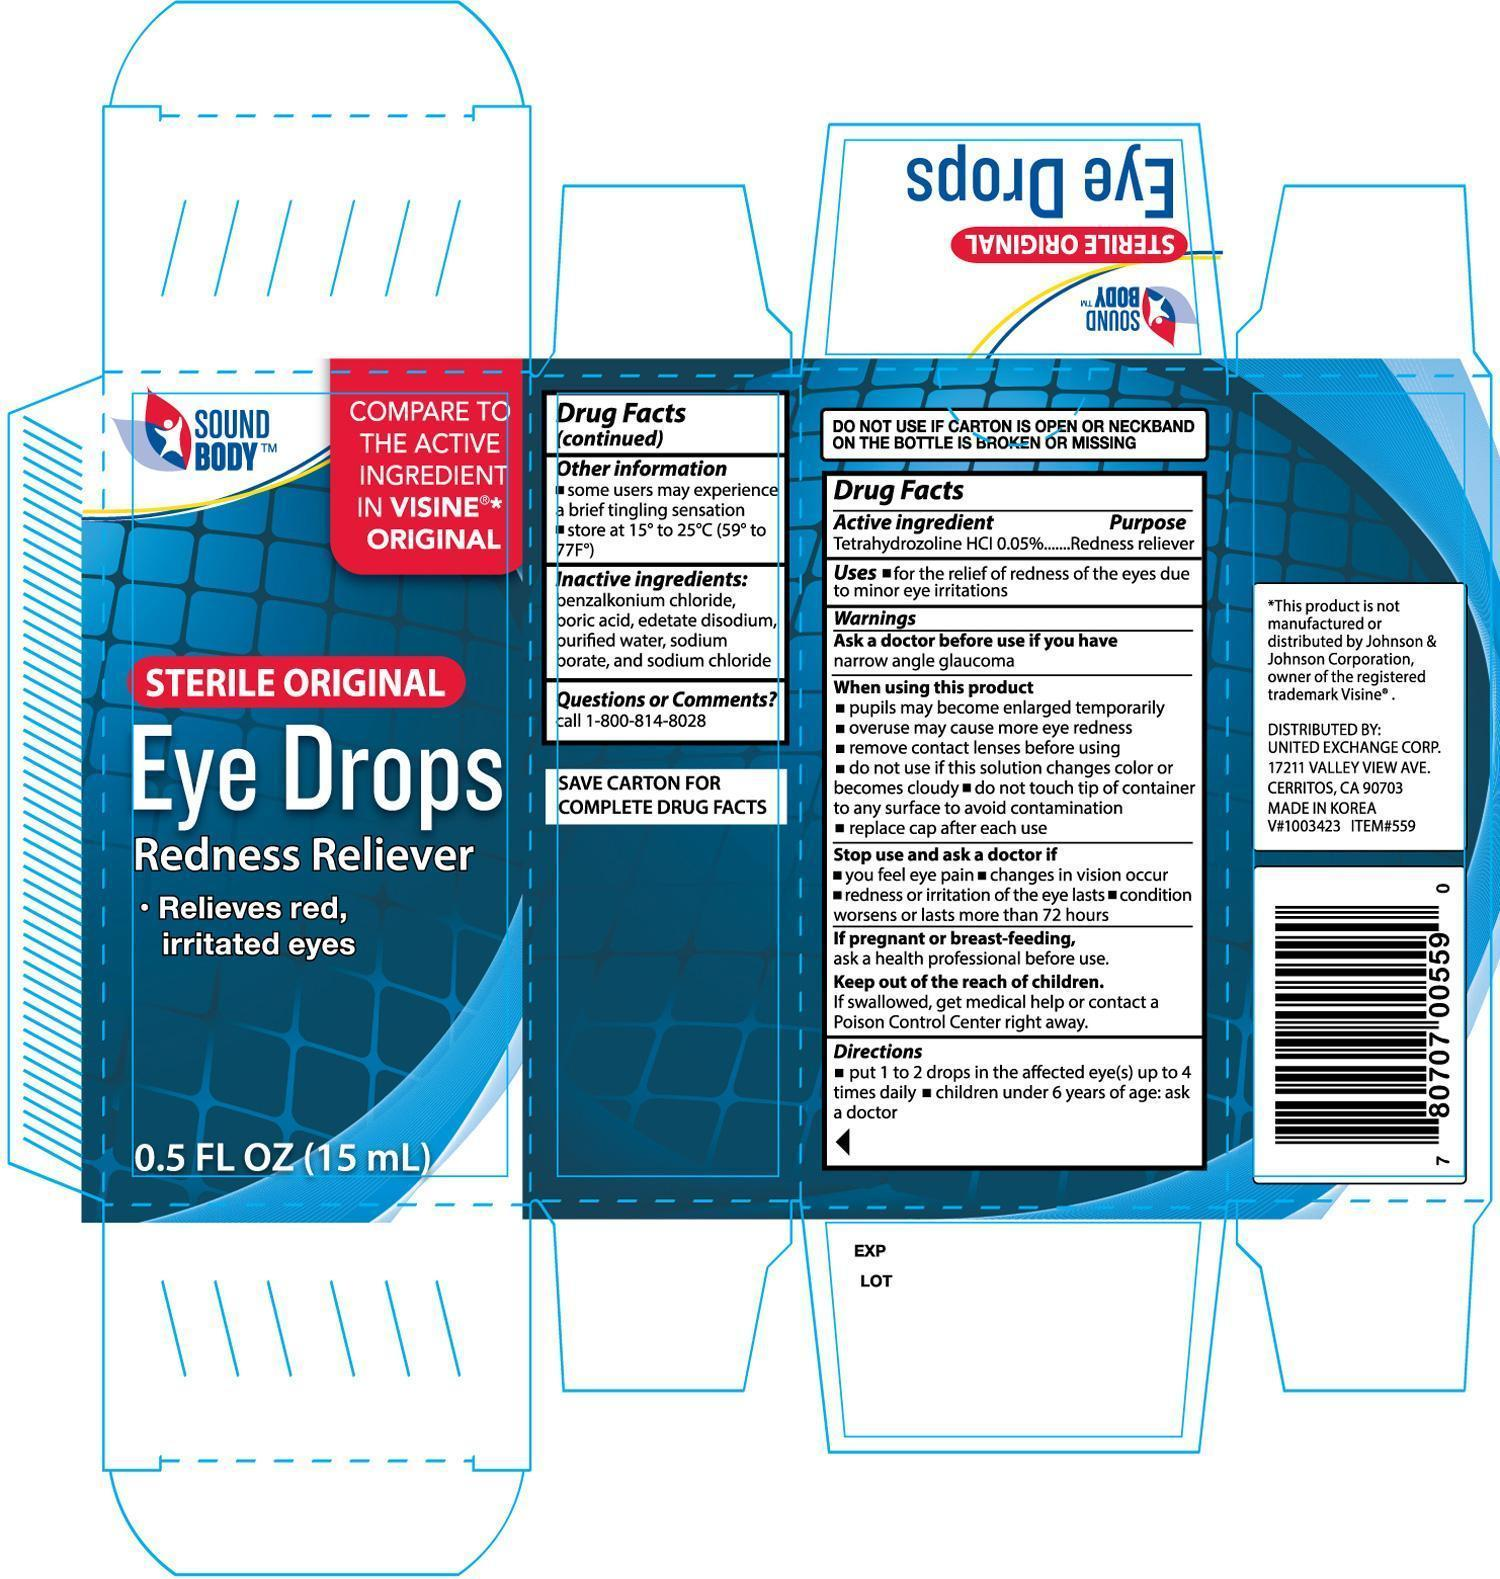 Sound Body Original Eye (Tetrahydrozoline Hydrochloride) Solution/ Drops [United Exchange Corp]